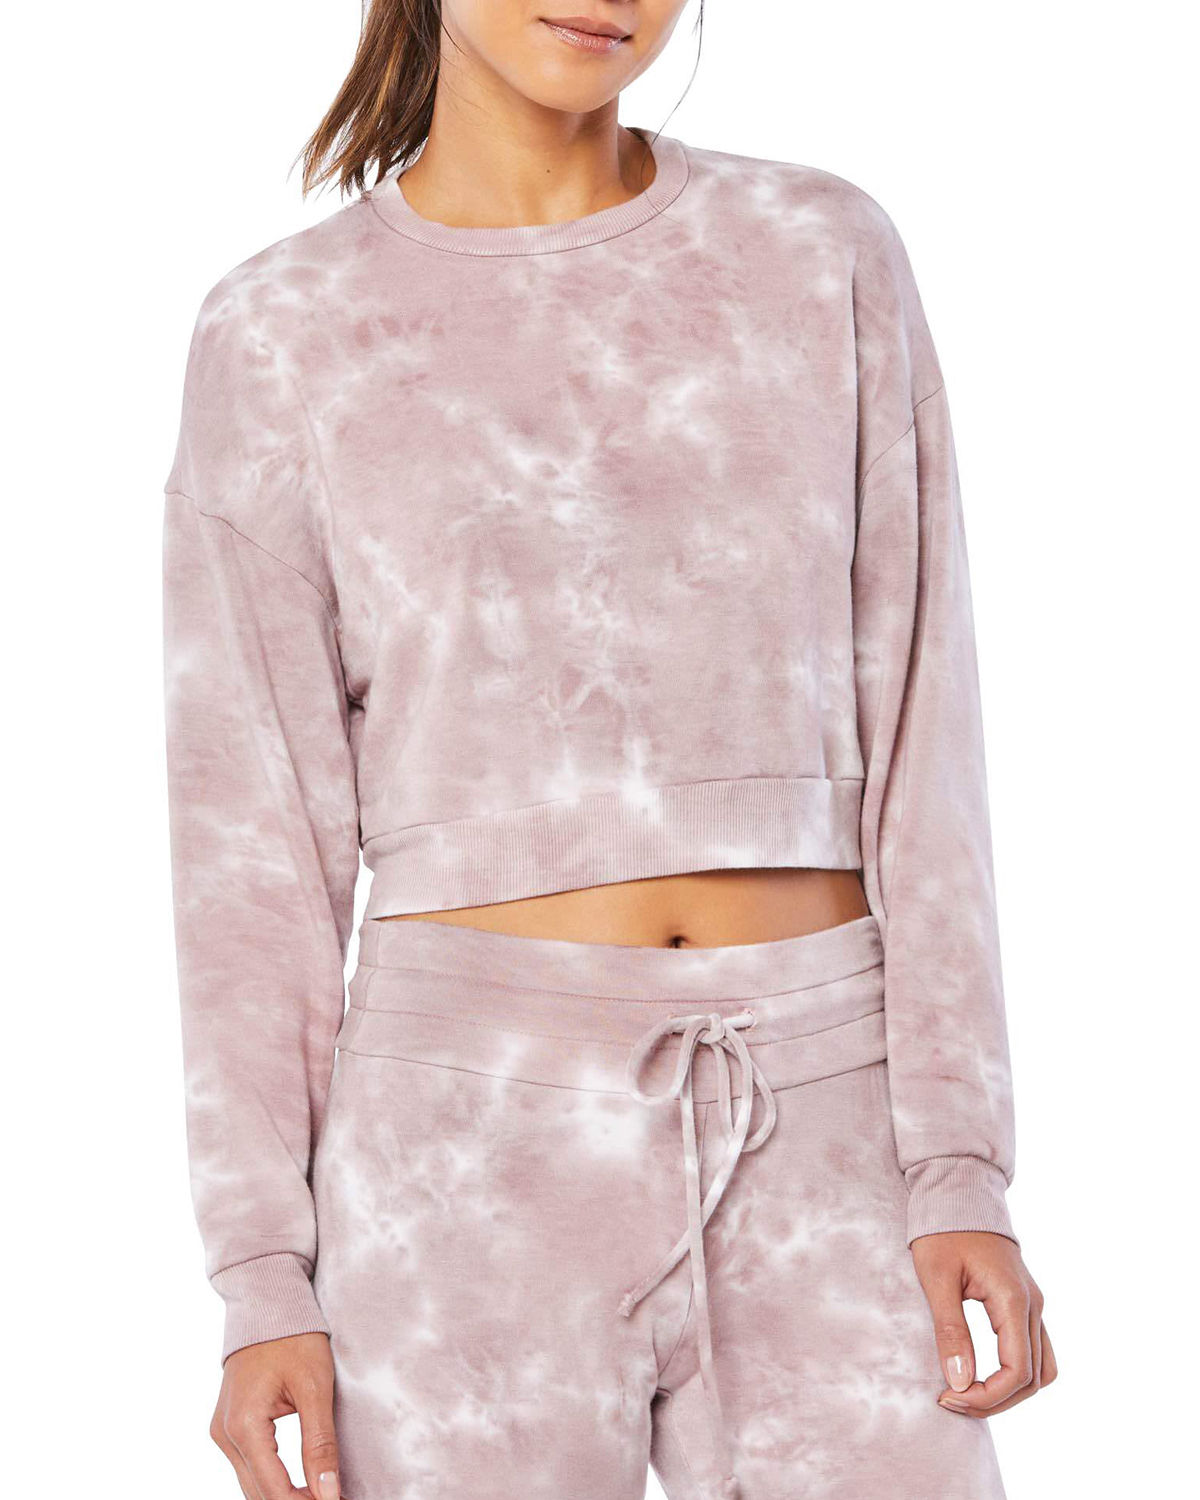 Day to Day Tie-Dye Pullover